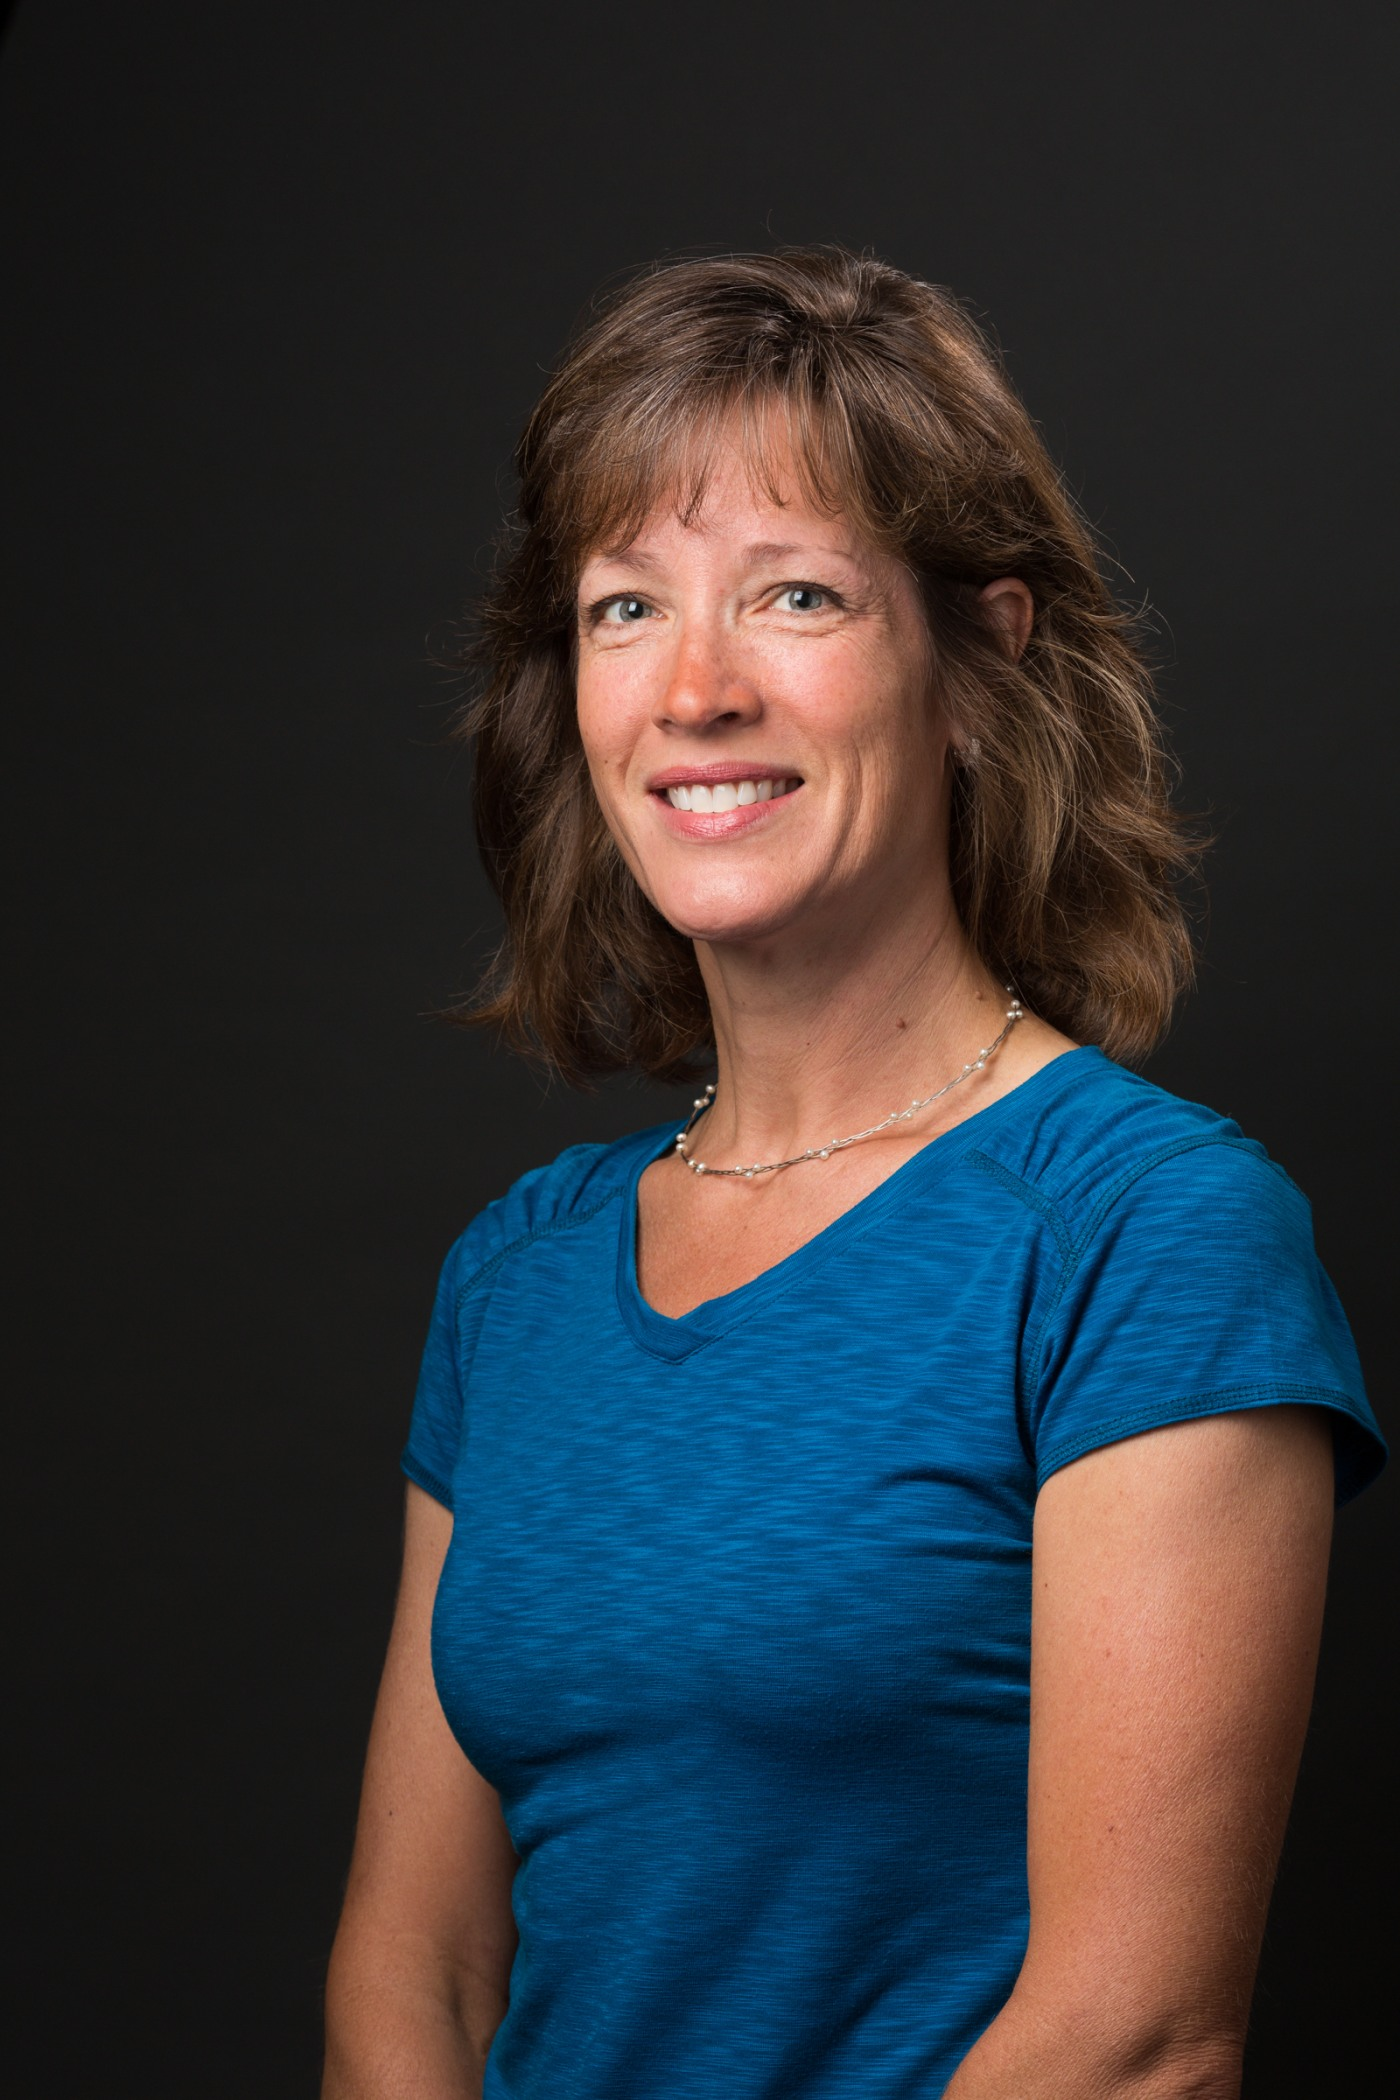 Dr. Carrie Swigart